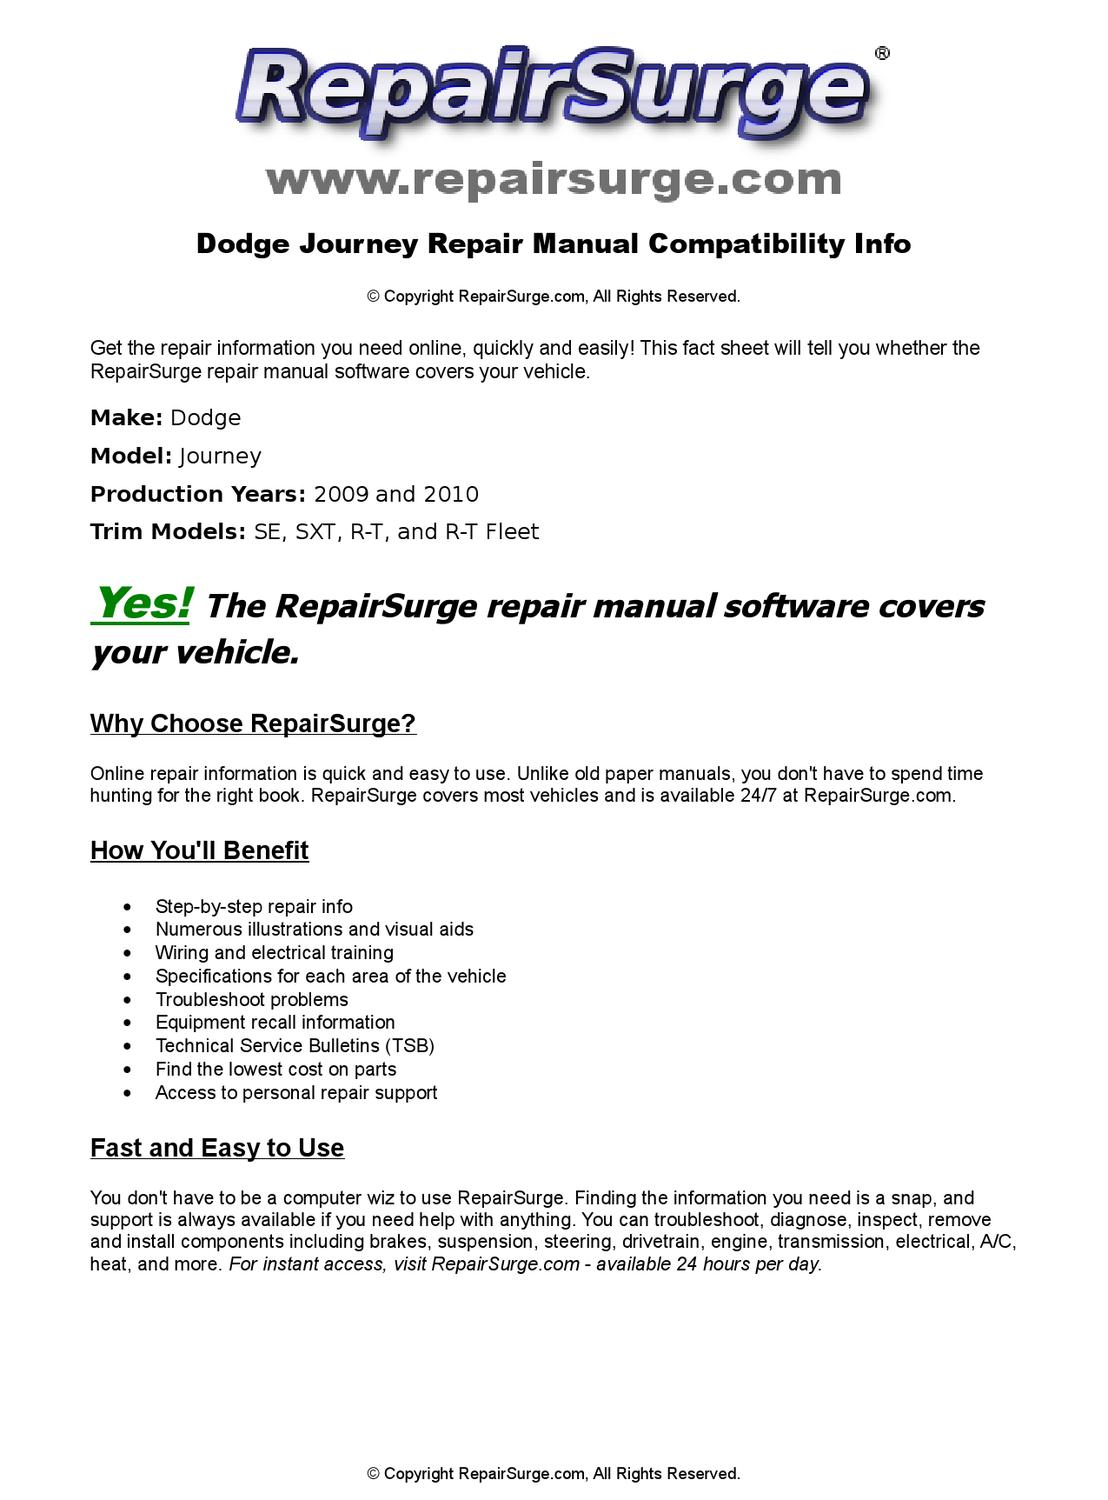 Dodge Journey Online Repair Manual For 2009 And 2010 By Repairsurge Wiring Recall Issuu